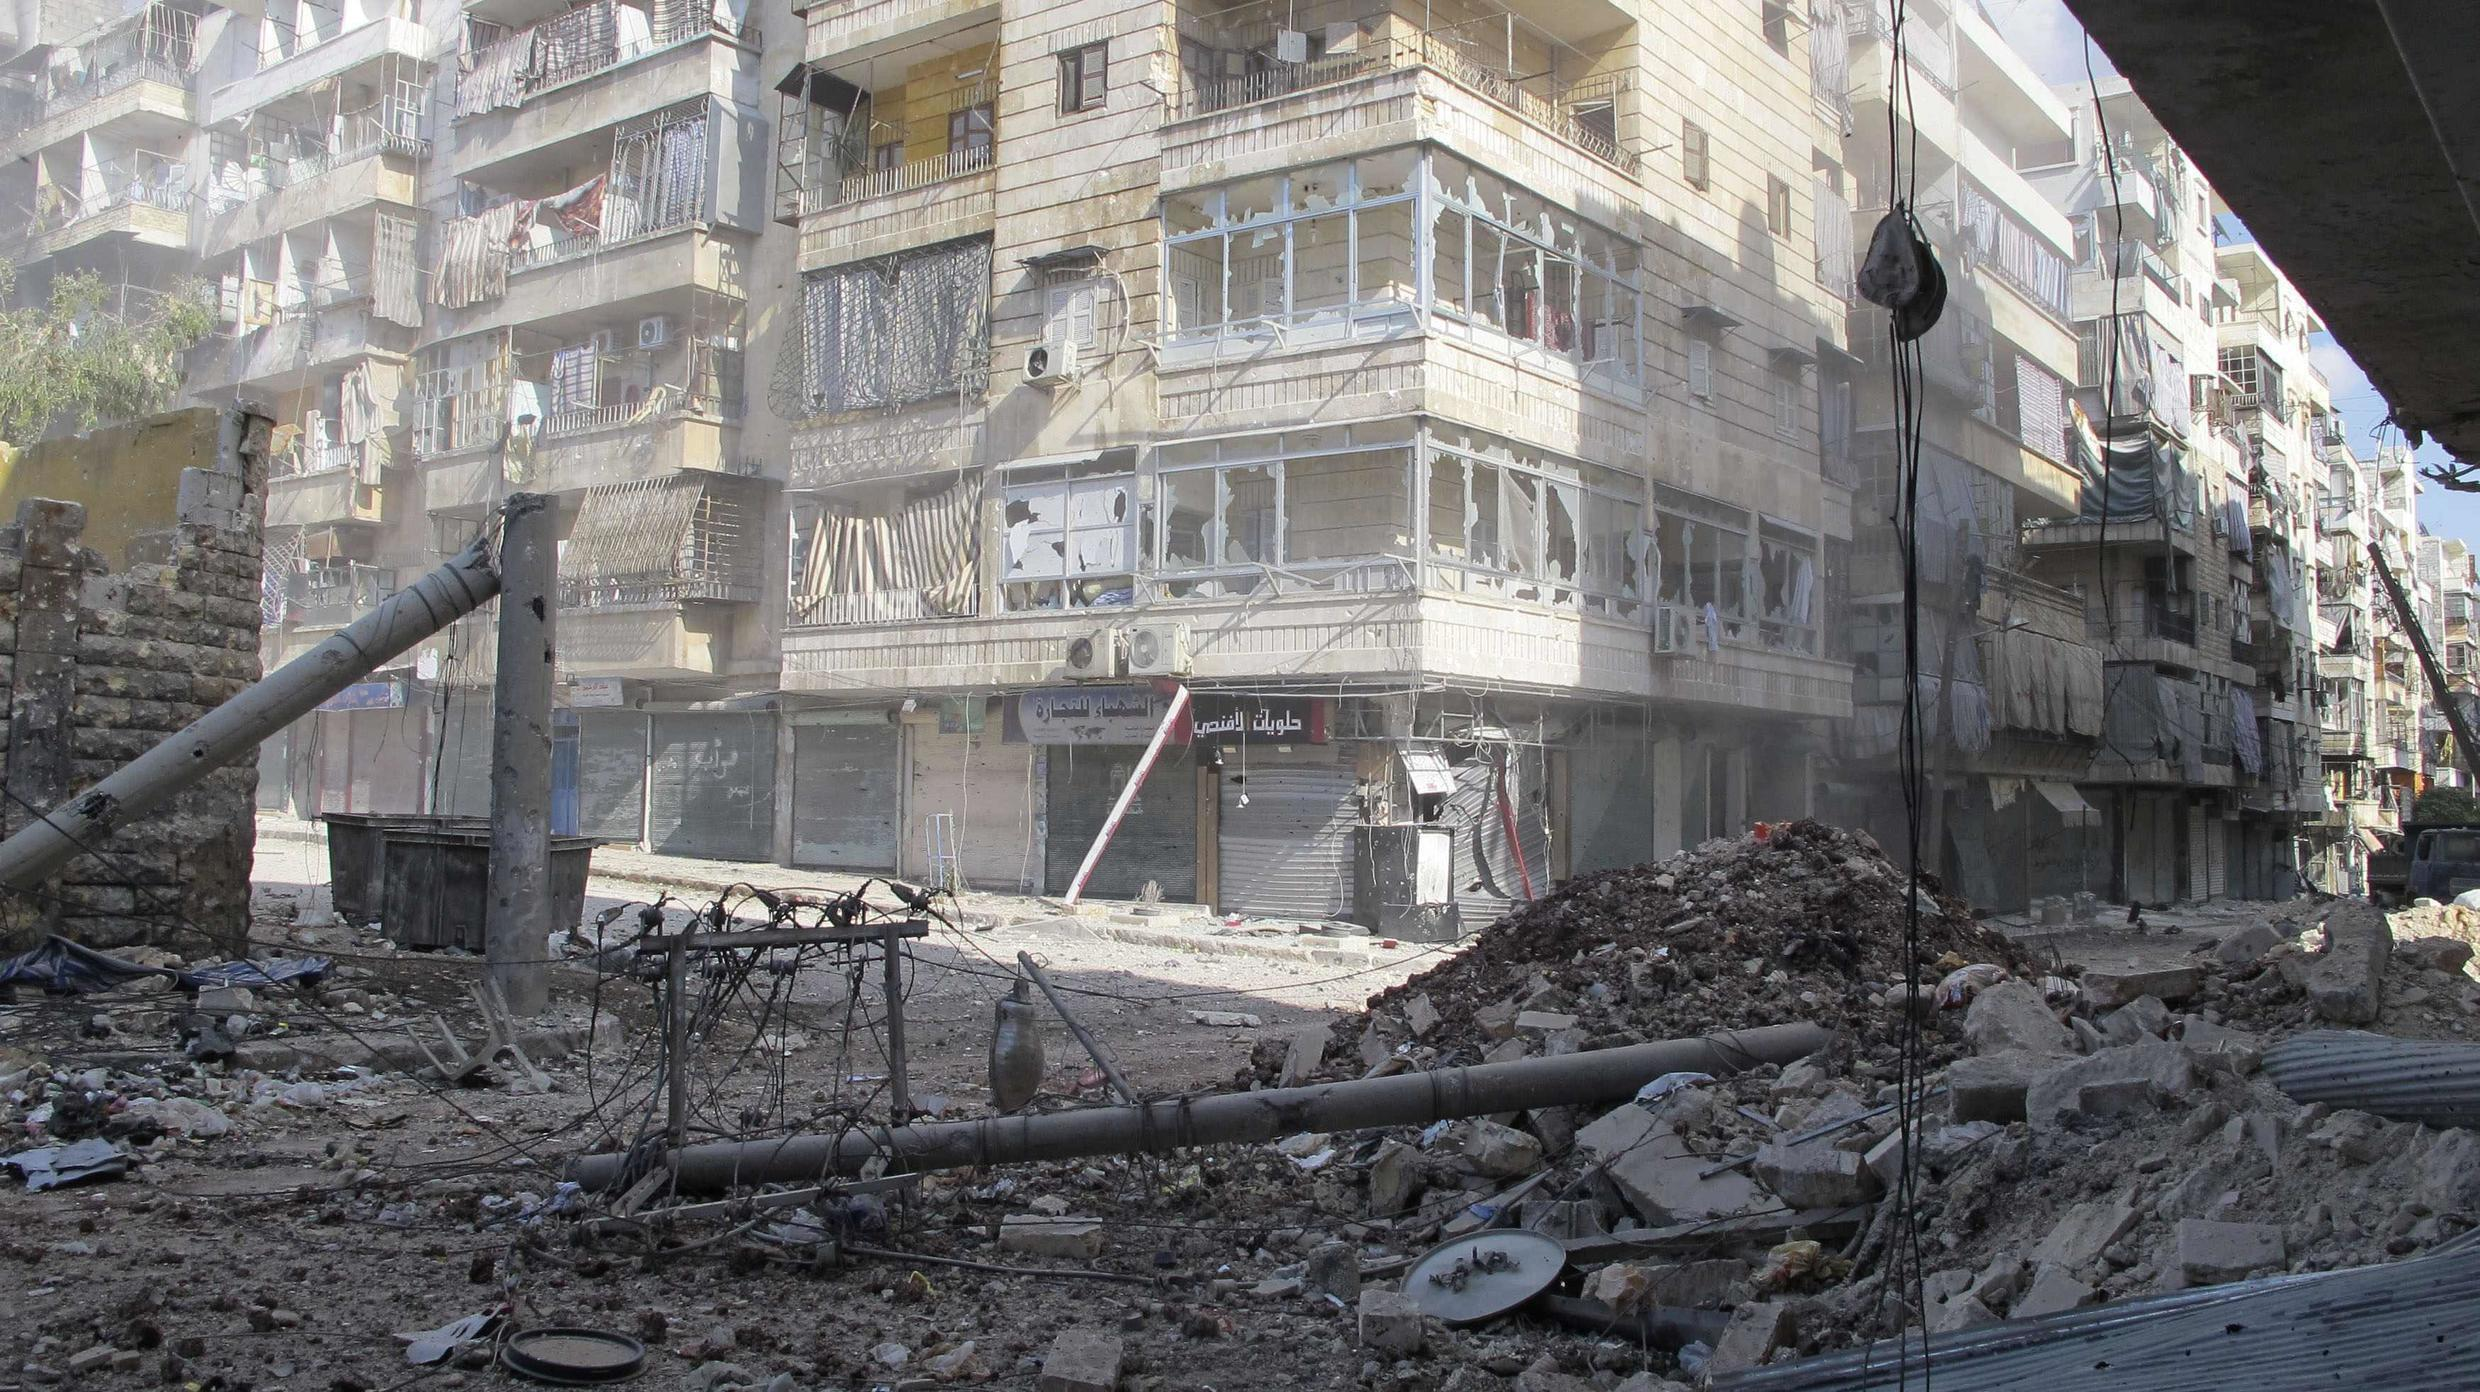 The ruined streets of Aleppo where government troops are fighting rebels of the Free Syrian Army